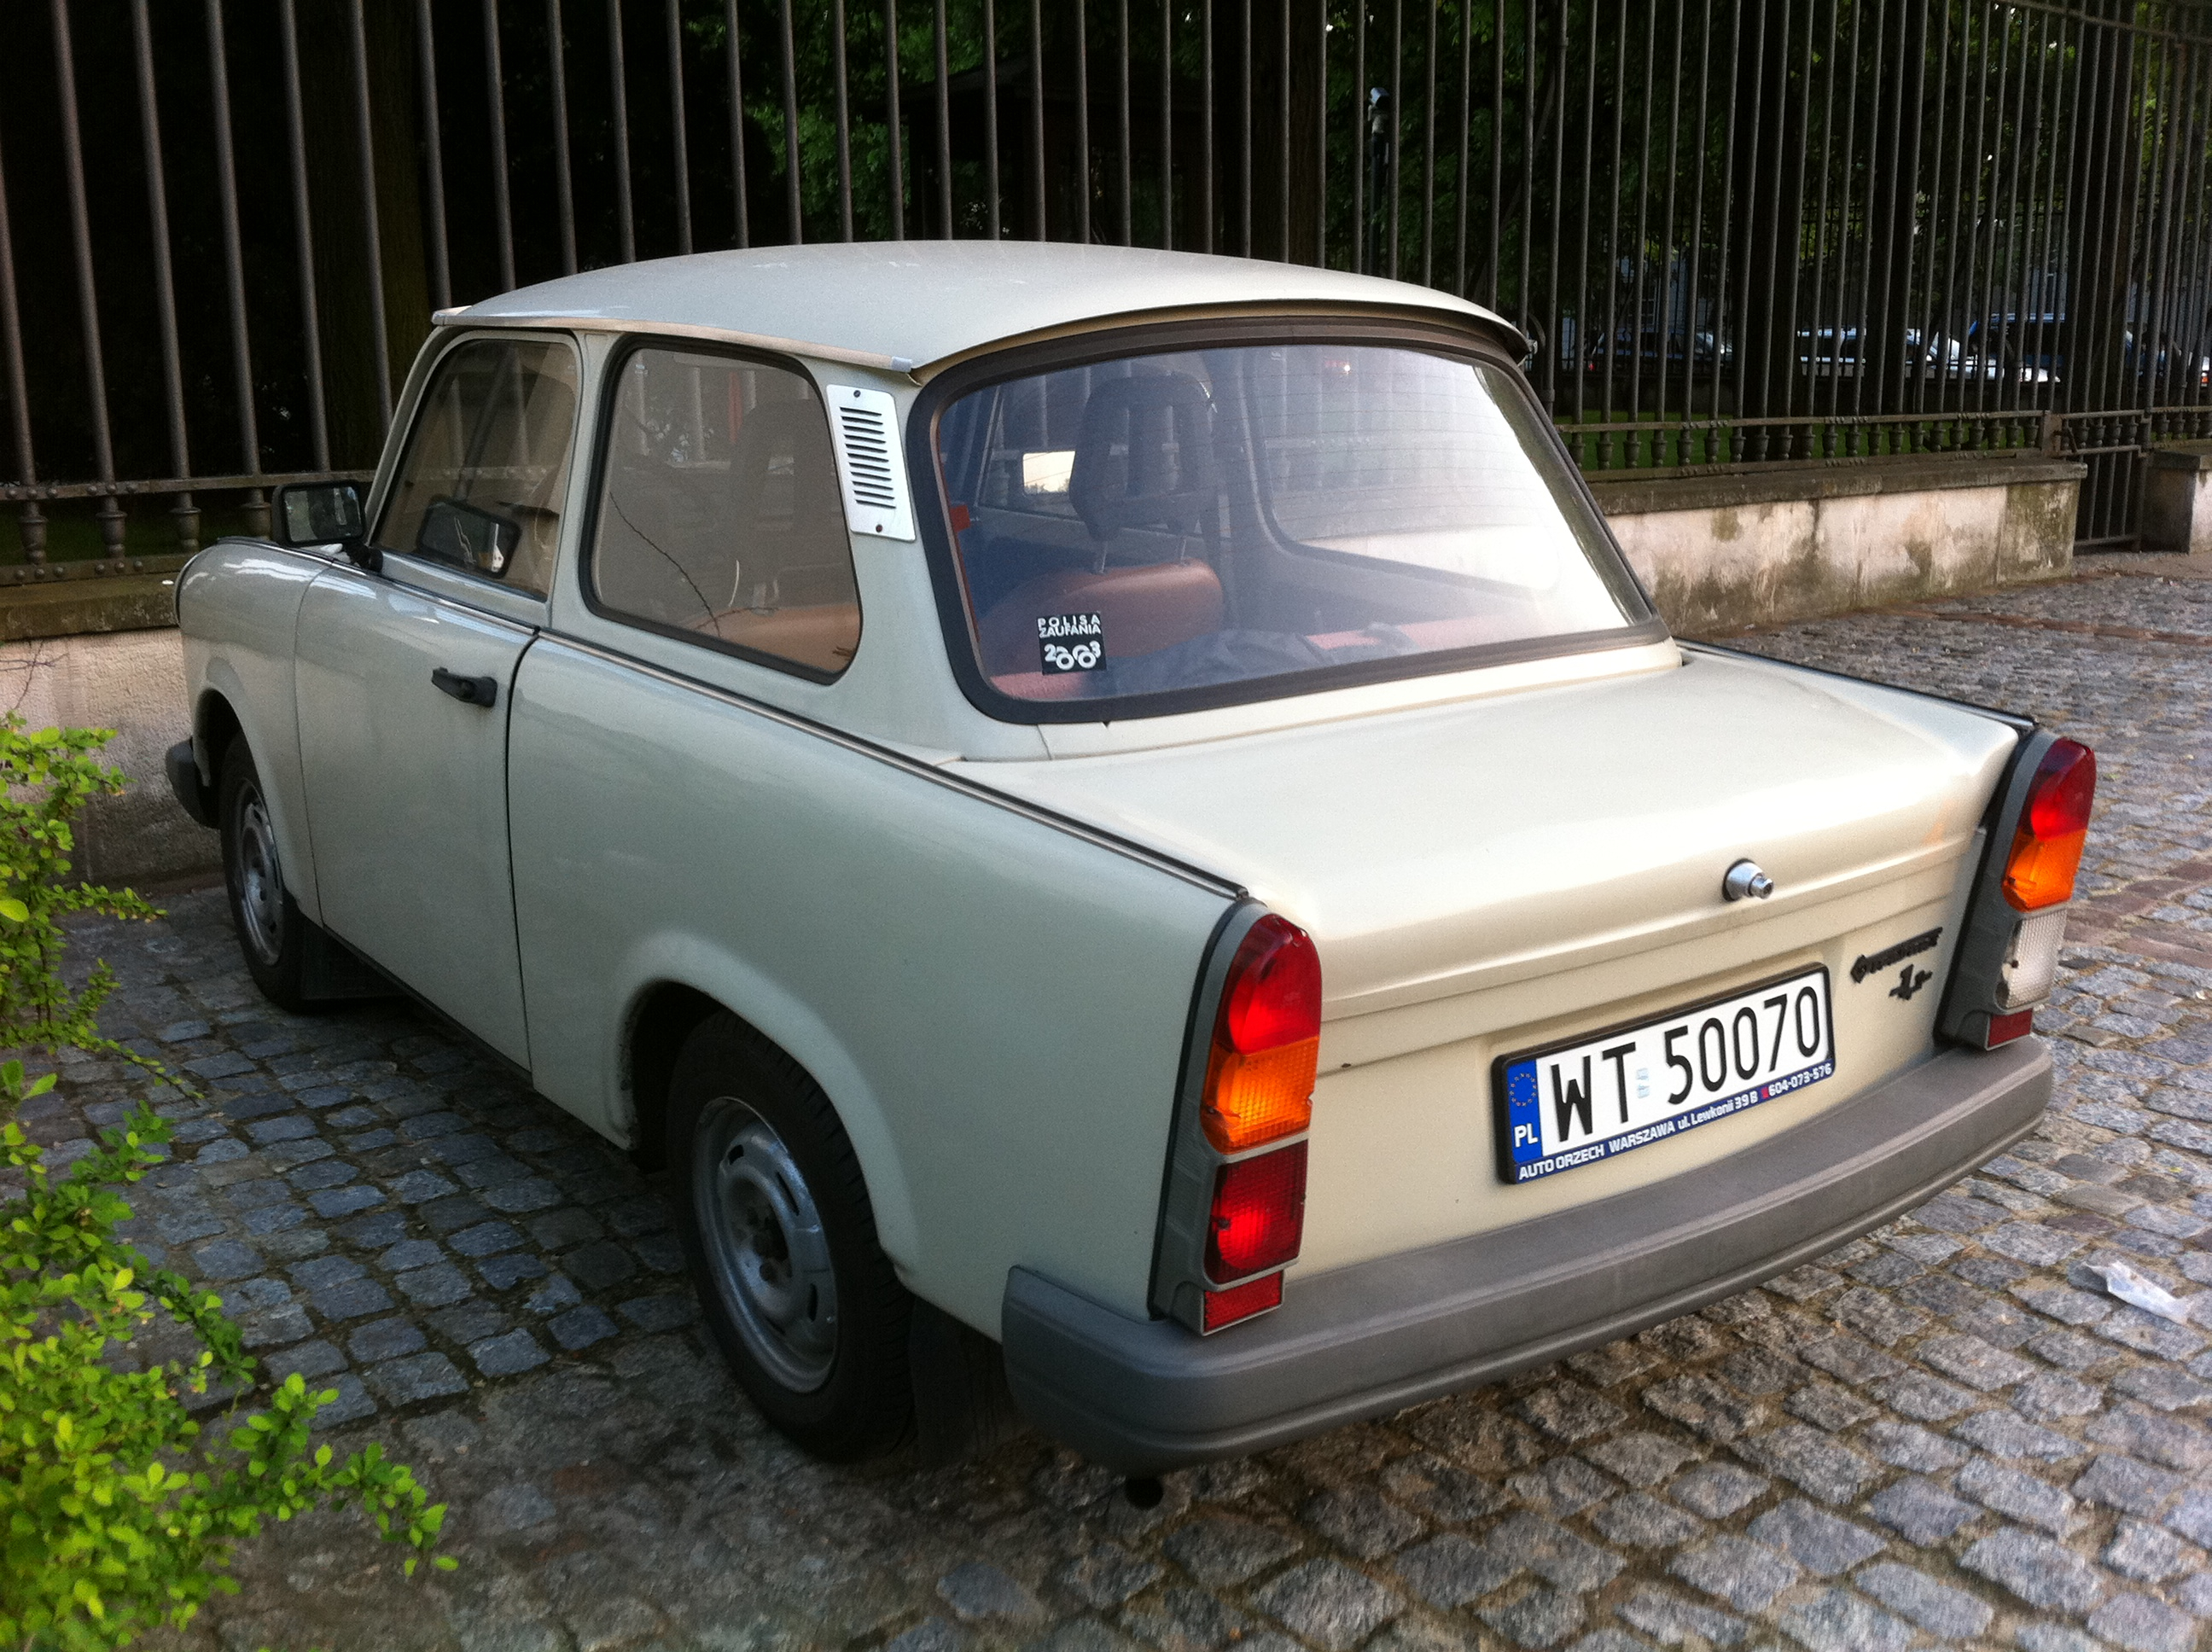 file trabant 1 1 sedan next to belweder palace. Black Bedroom Furniture Sets. Home Design Ideas